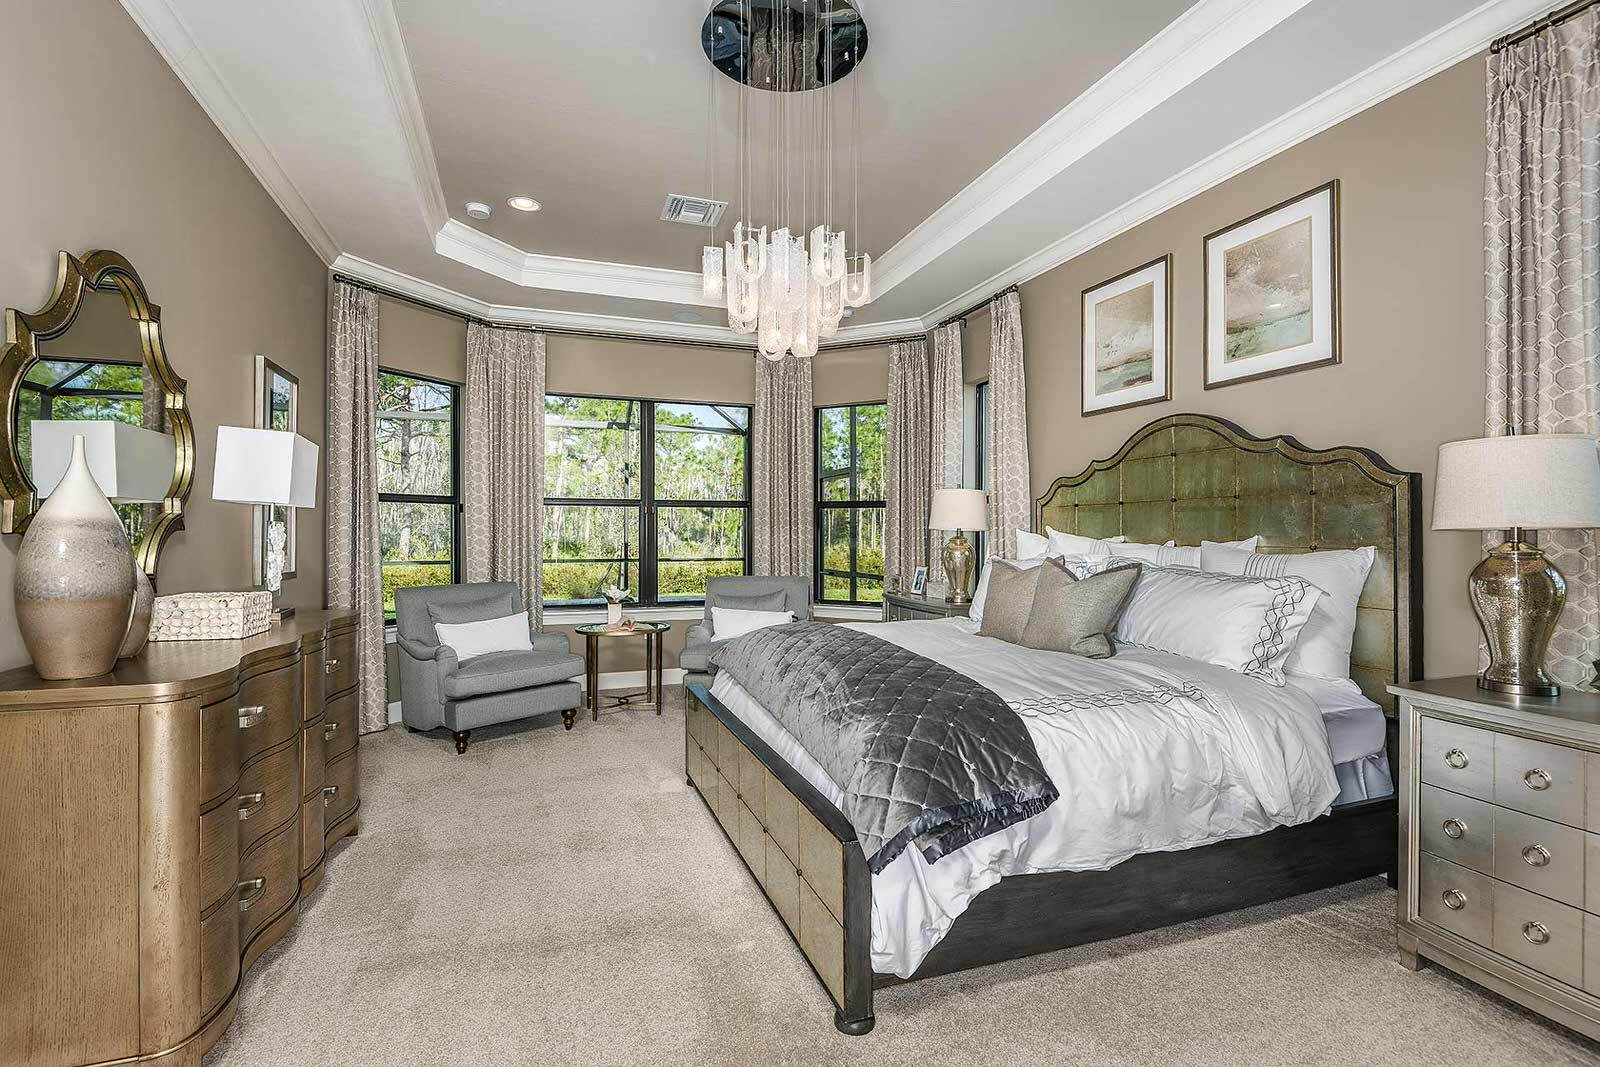 Bedroom featured in the Lazio Plan By Taylor Morrison in Tampa-St. Petersburg, FL